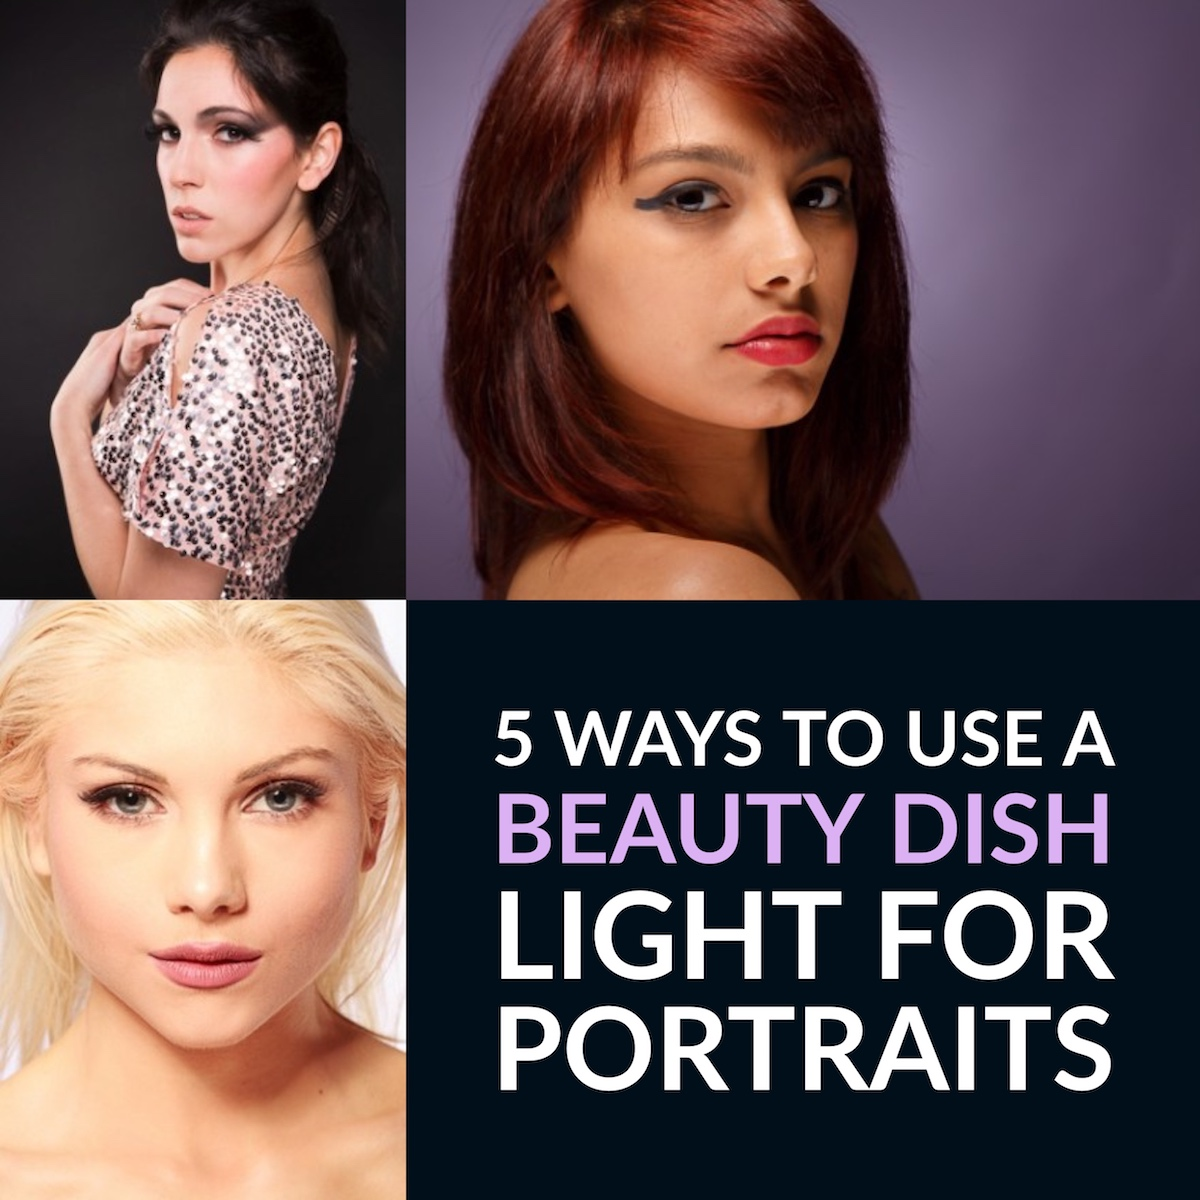 5 ways to use a beauty dish light for portraits